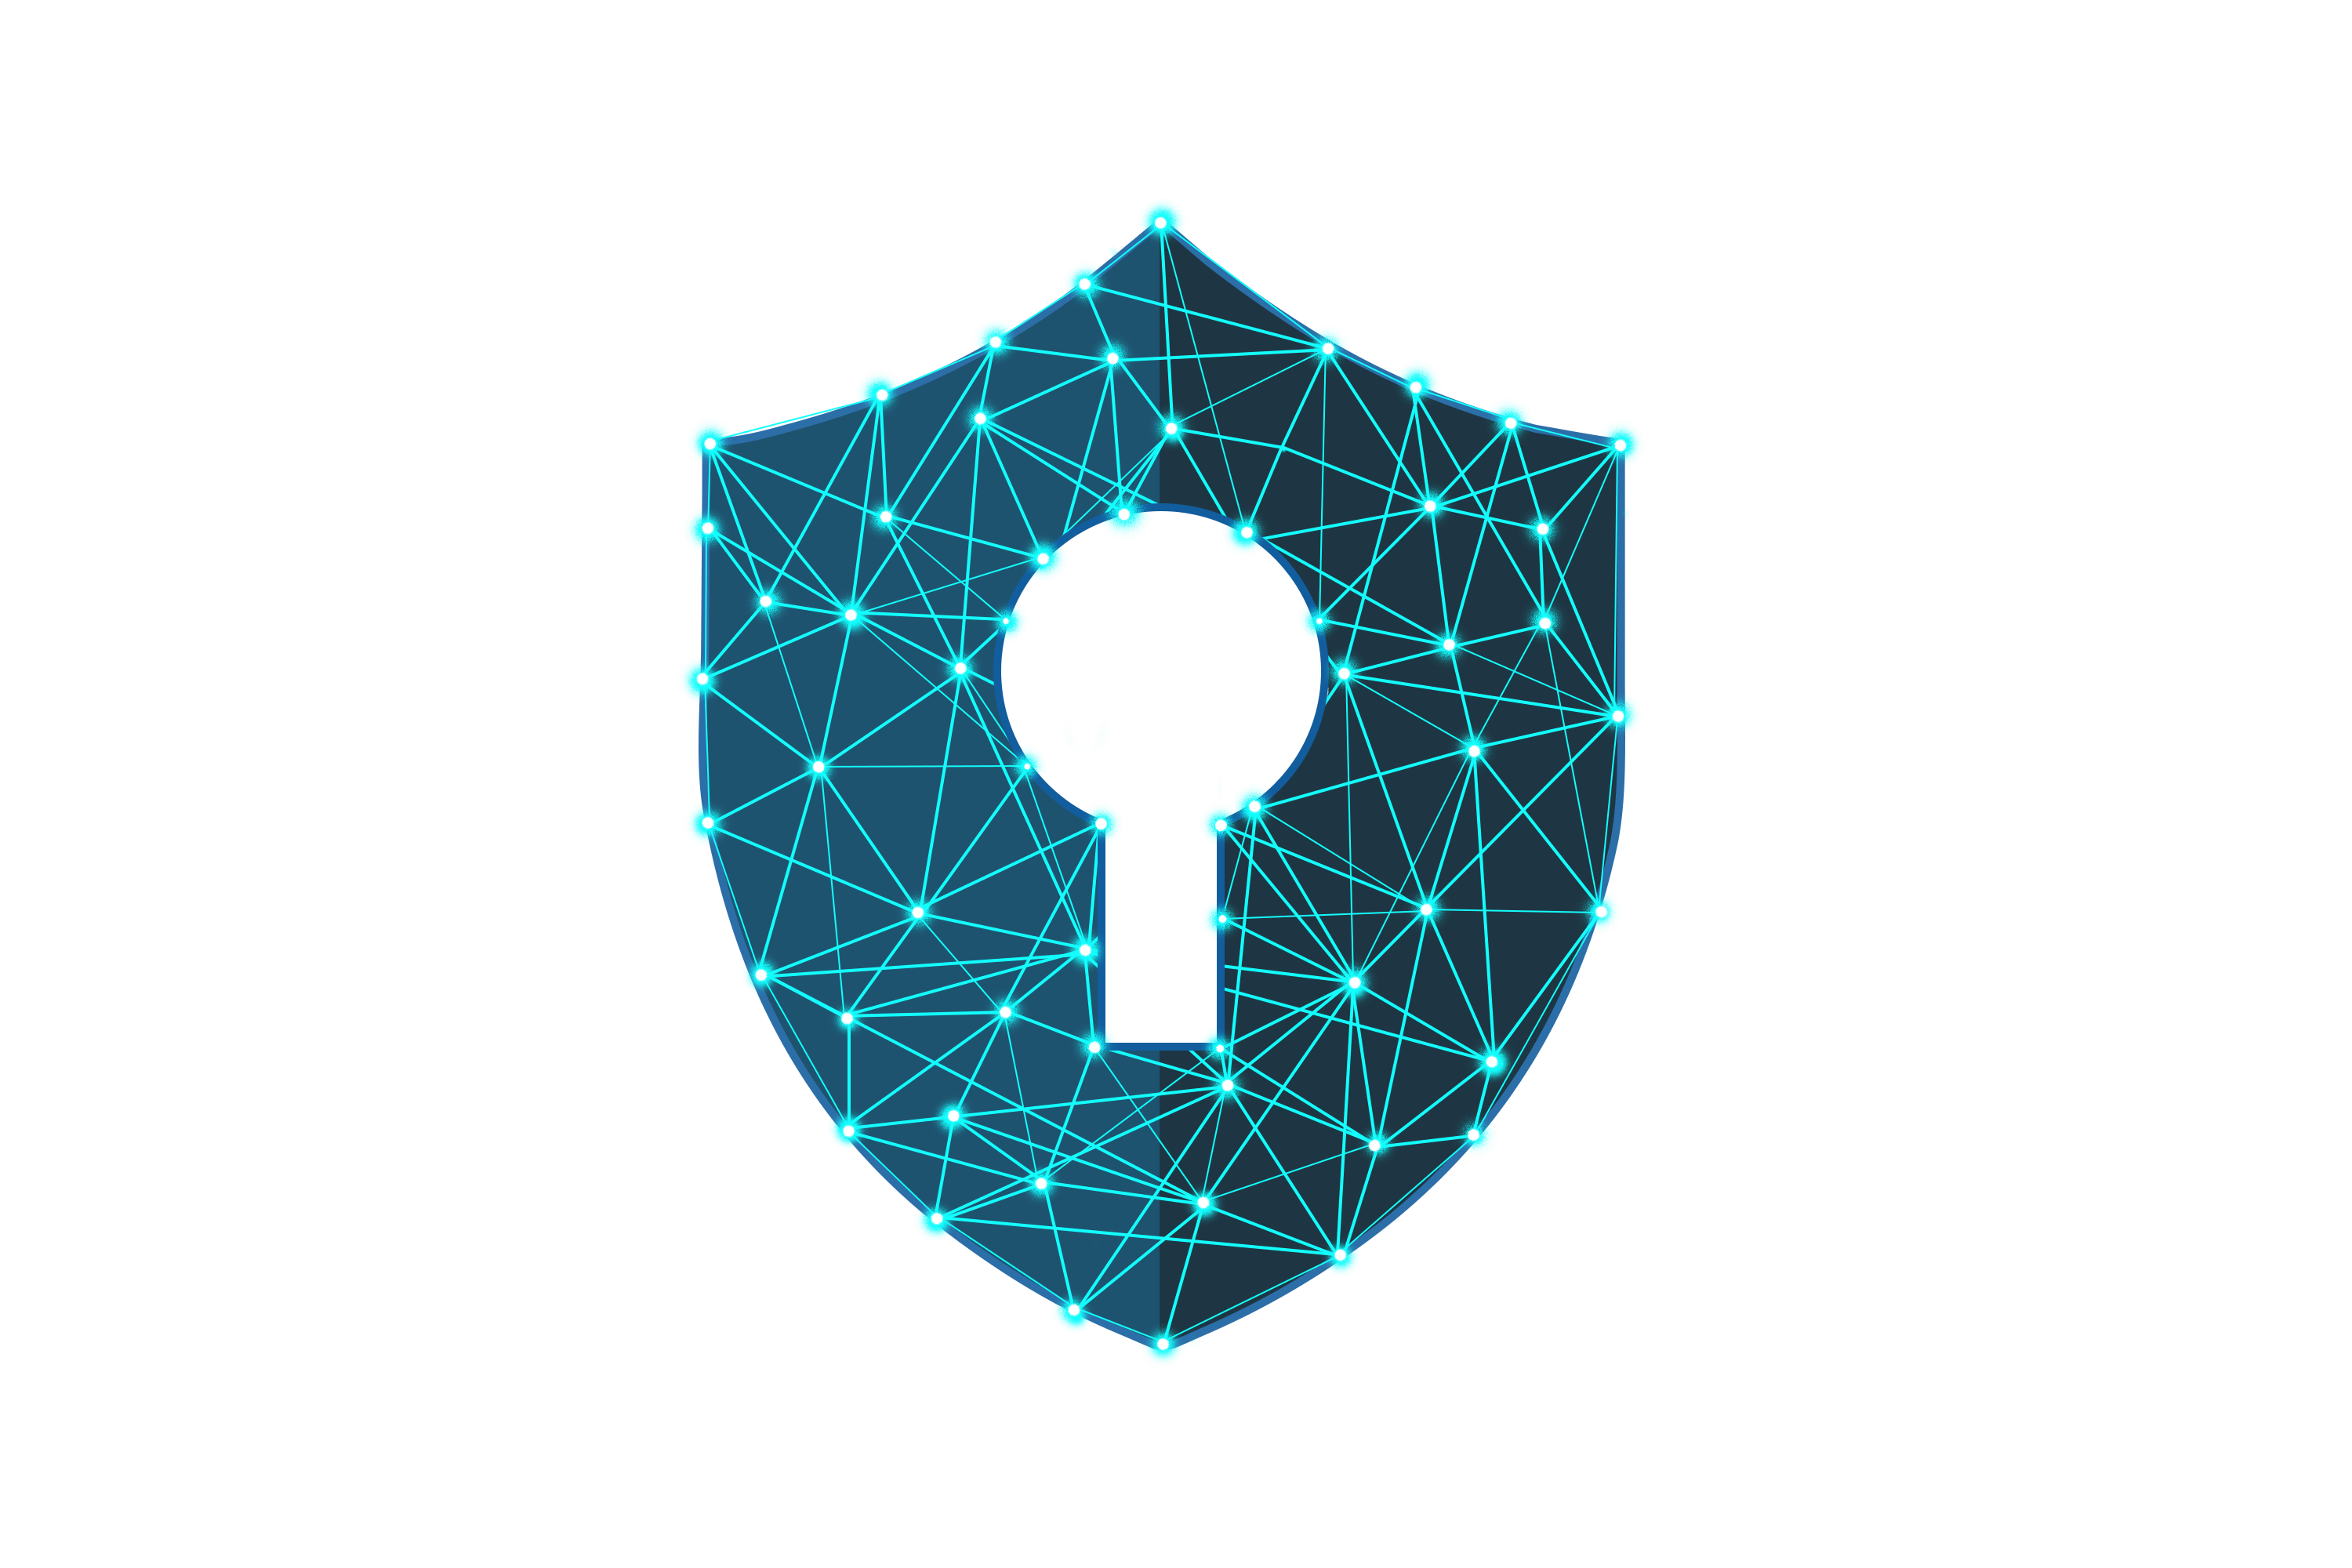 —Pngtree—cyber security shield_5610122